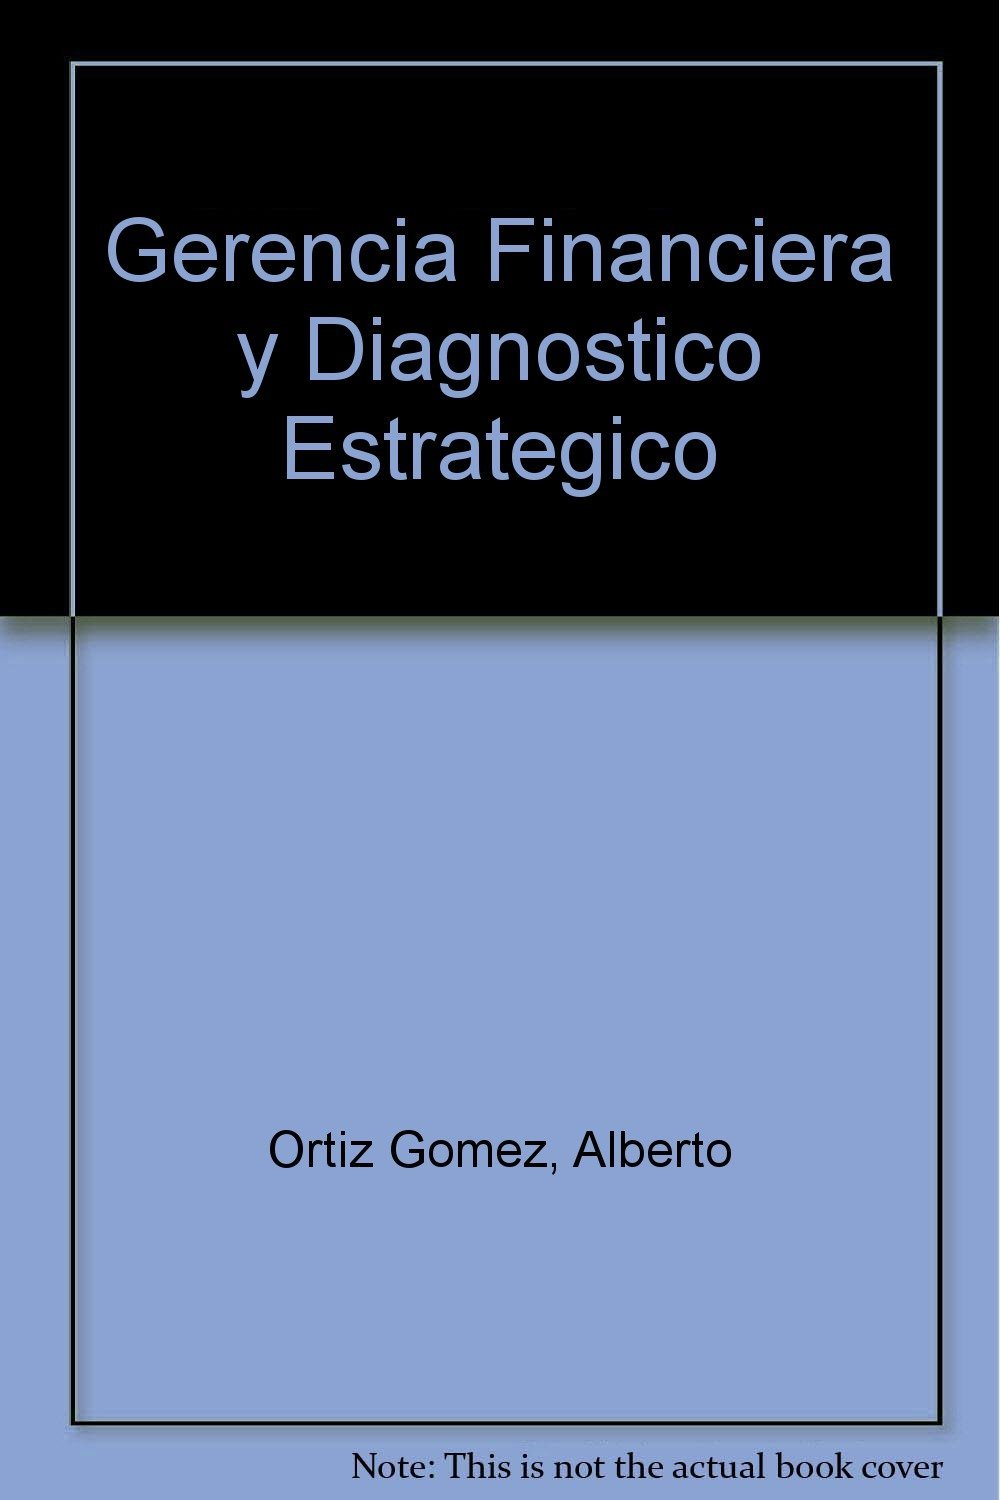 Download Gerencia Financiera y Diagnostico Estrategico (Spanish Edition) pdf epub